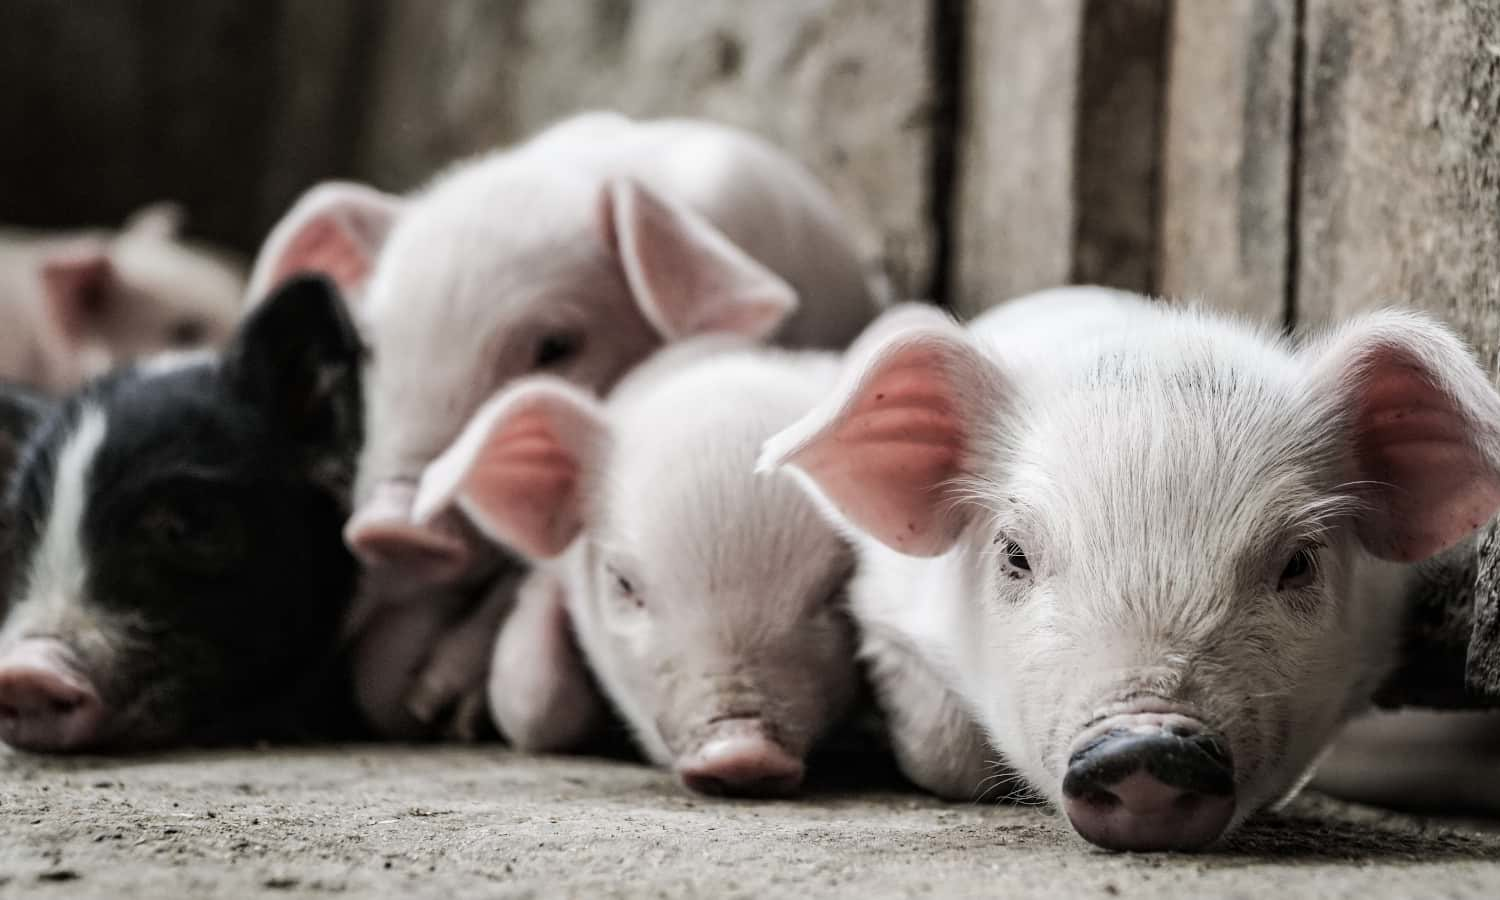 Hog farmers are still working through the long term effects of pork processing COVID-19 related plant closures.